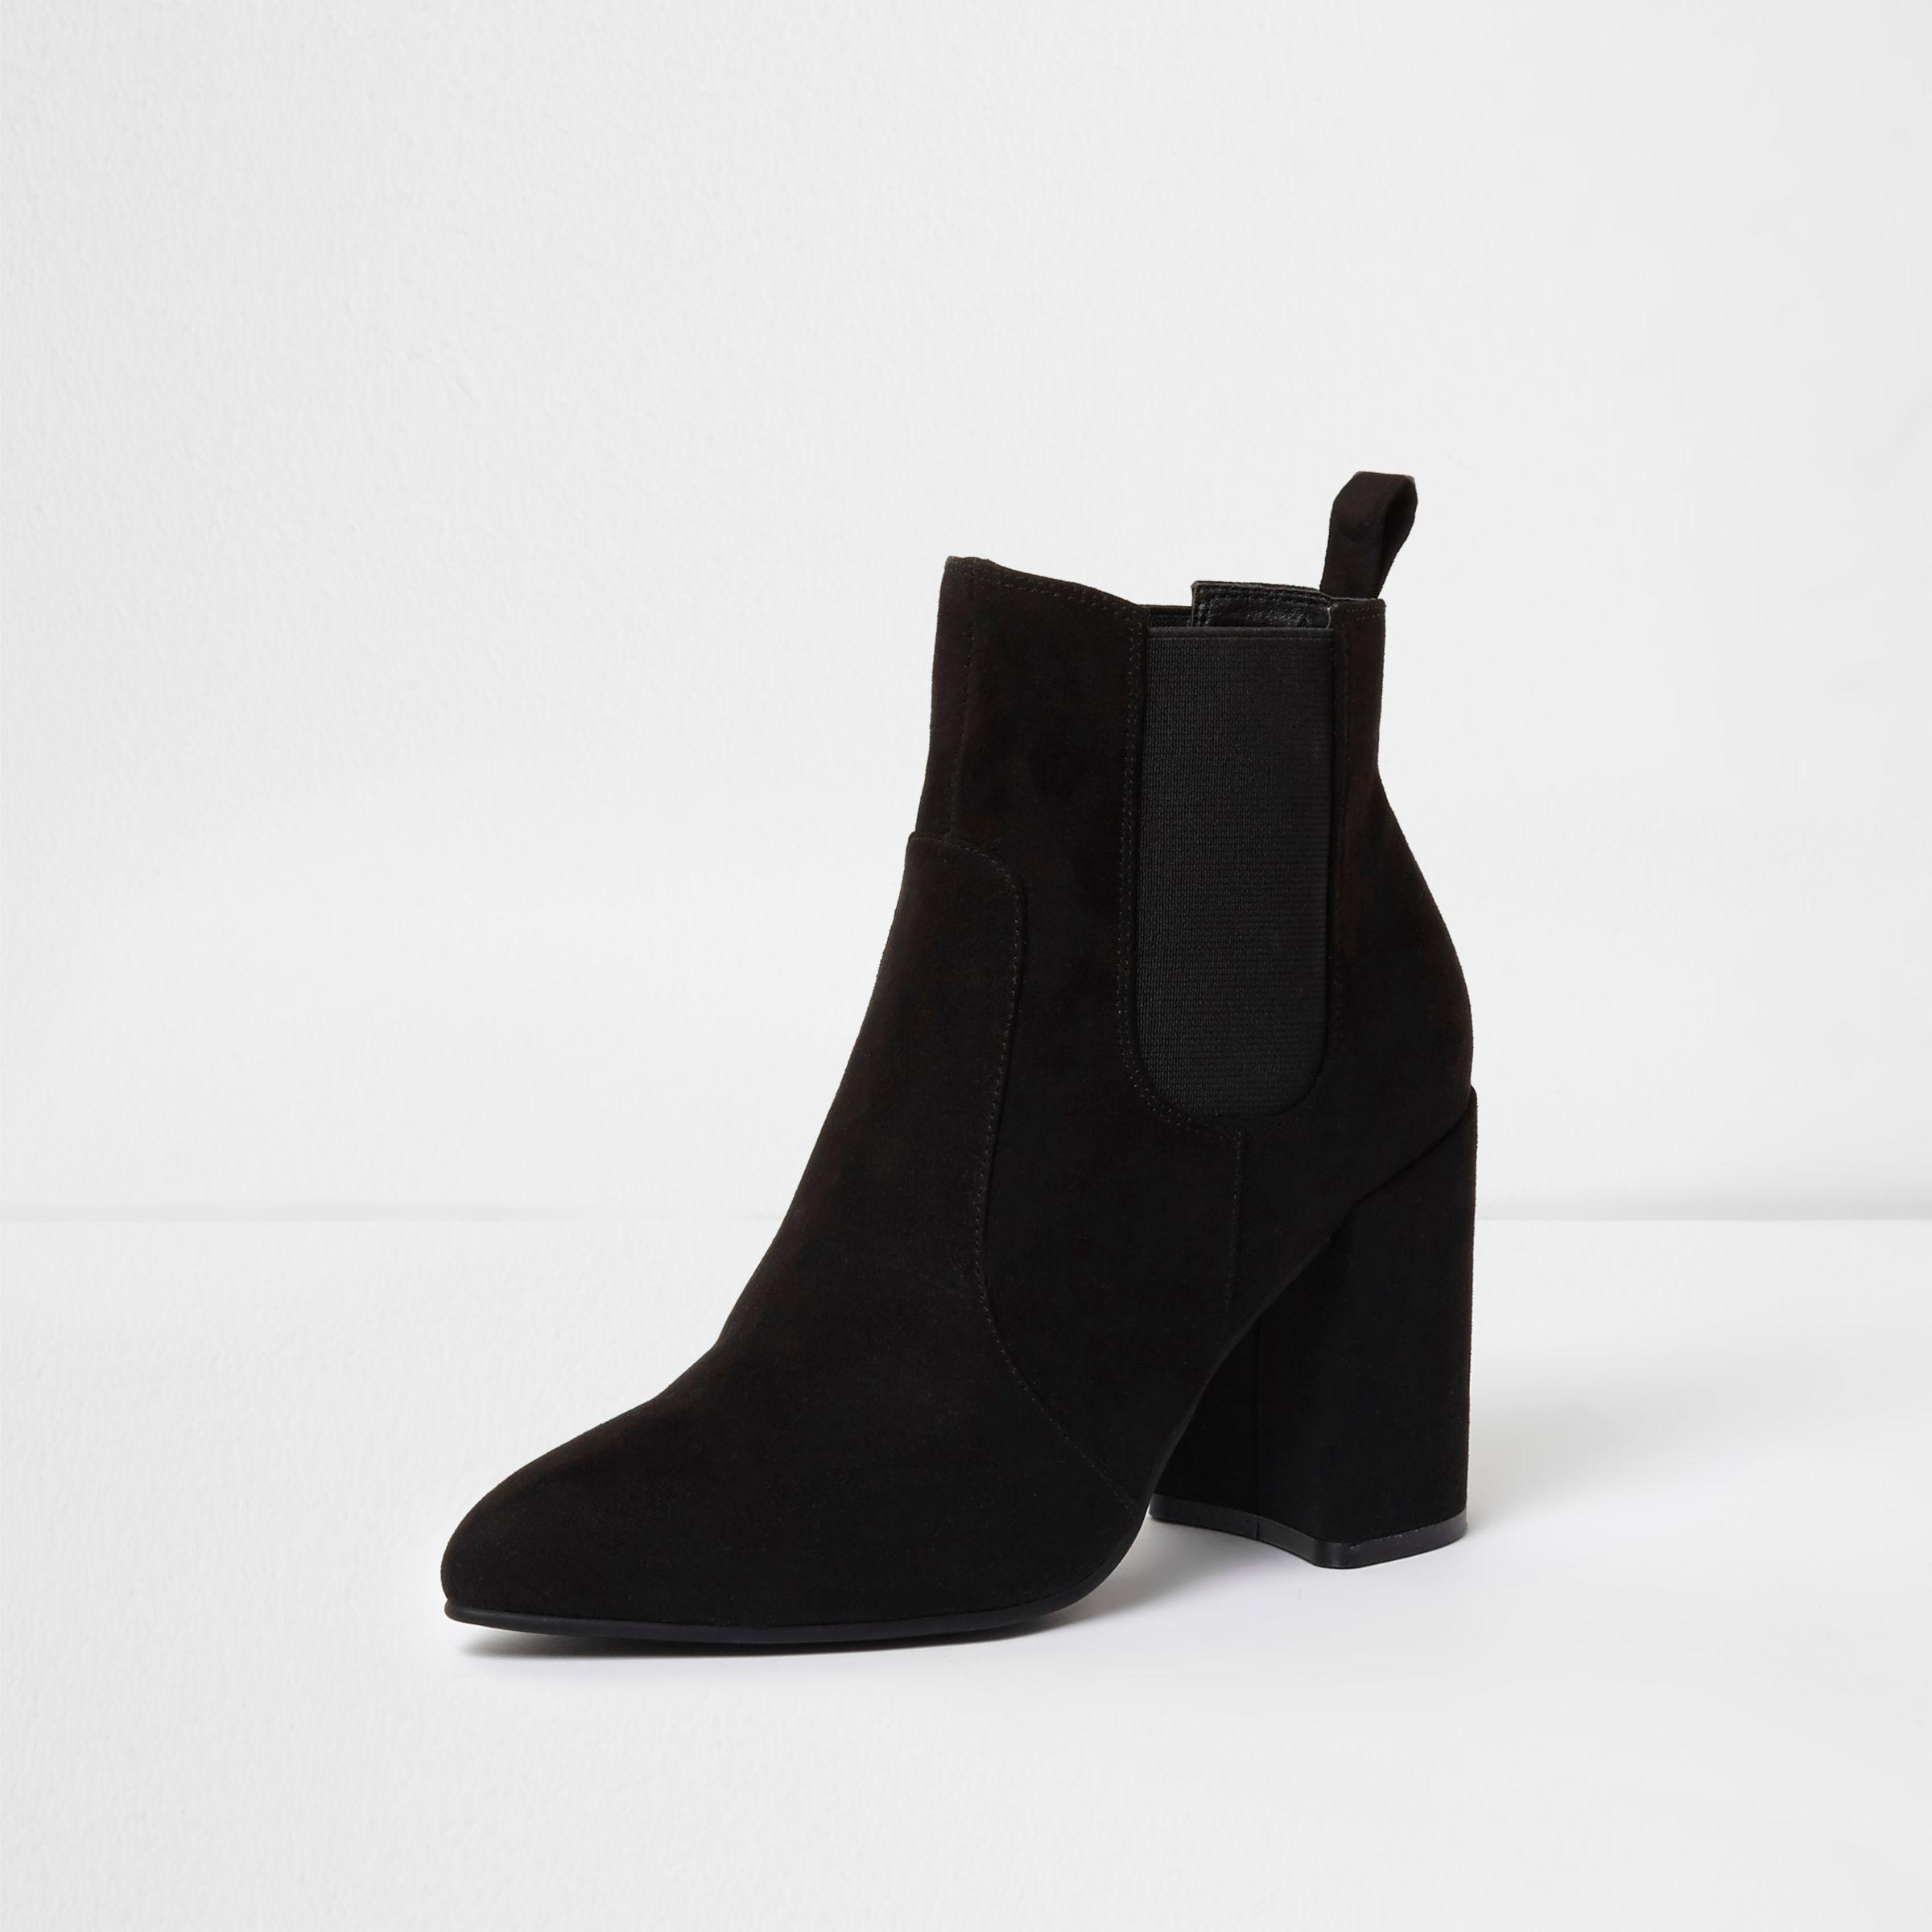 River Island Suede Black Pointed Toe Block Heel Chelsea Boots